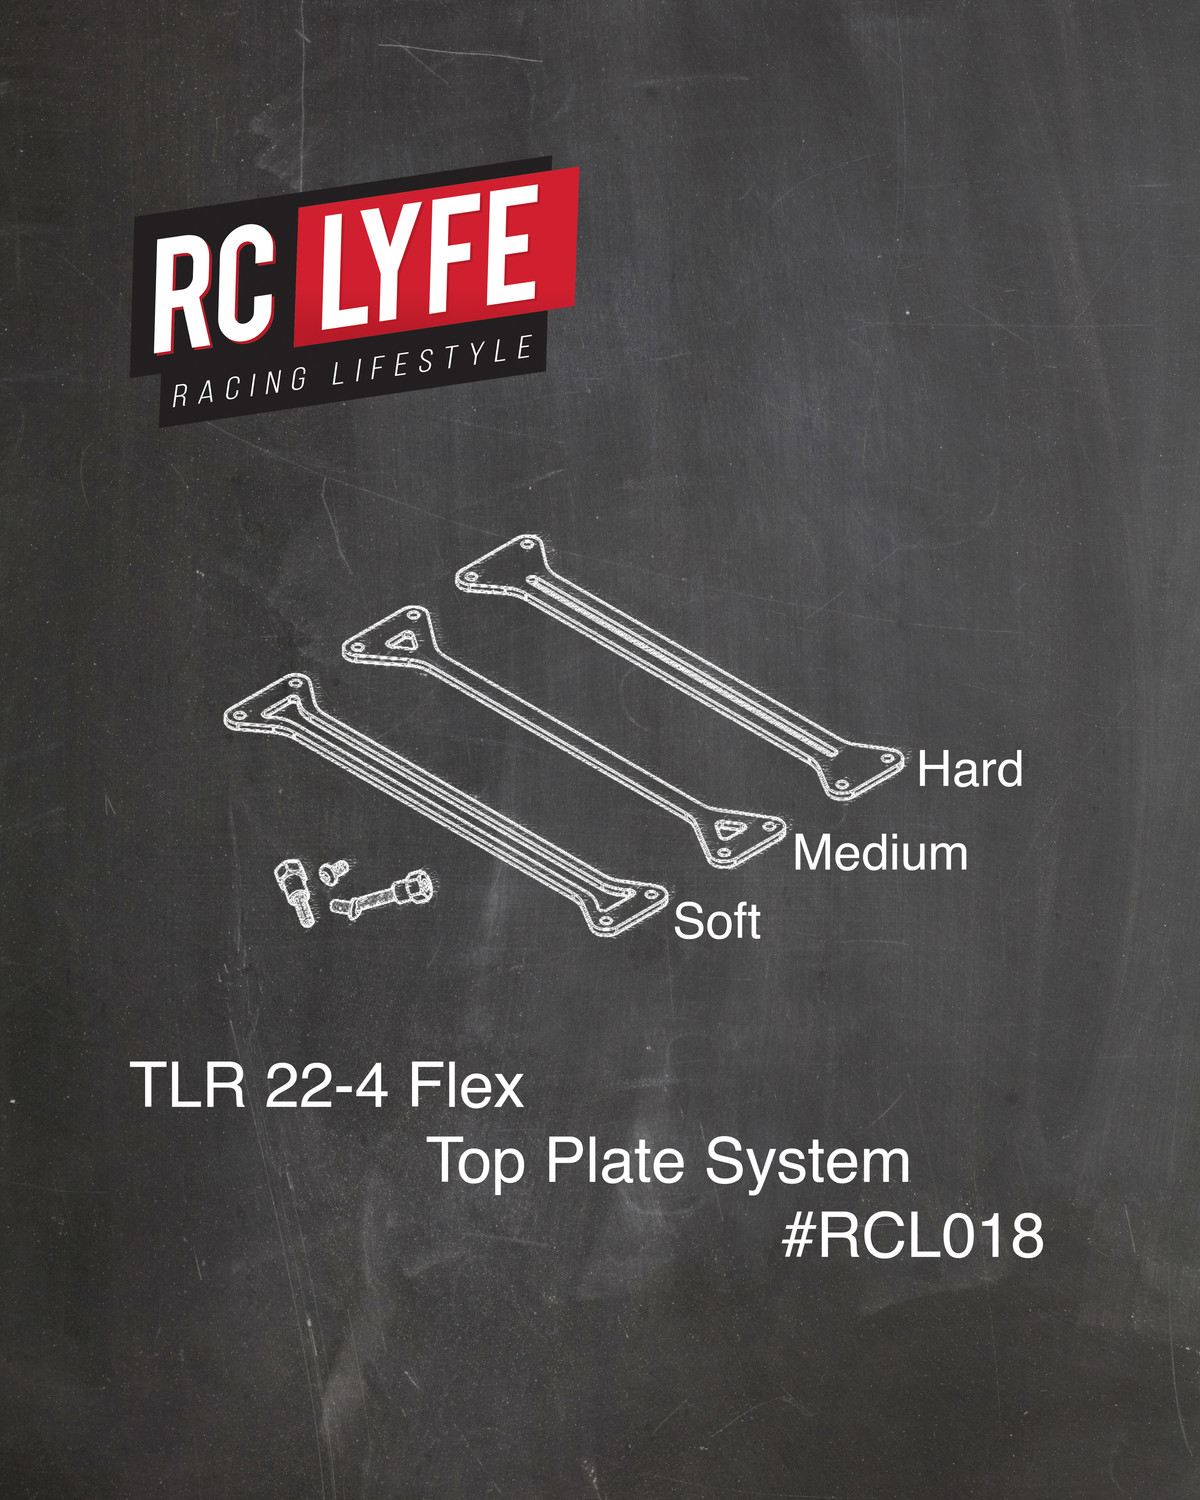 TLR 22-4 Flex Top Plate and Mounting System